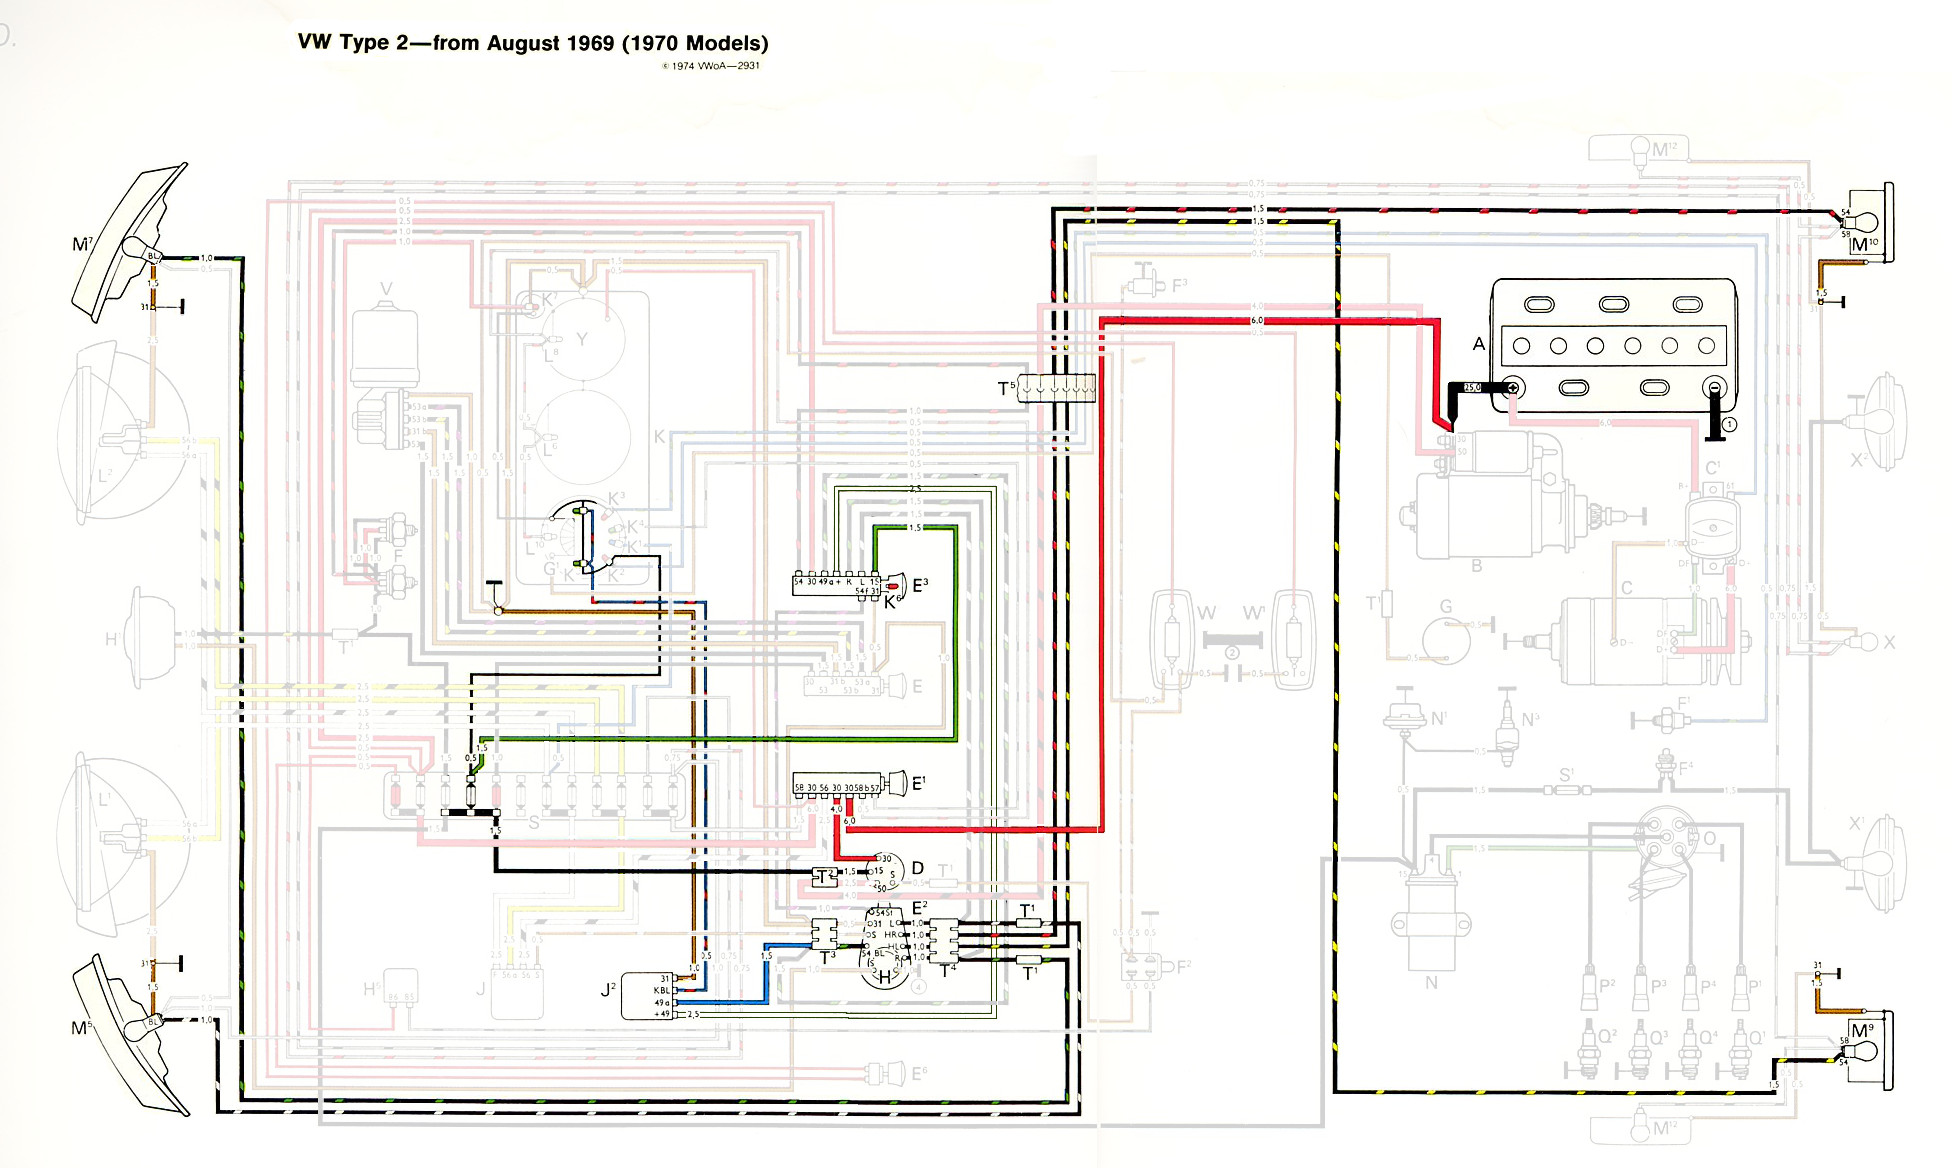 thesamba com type 2 wiring diagrams rh thesamba com freightliner school bus wiring diagram 1997 Freightliner Wiring Diagram